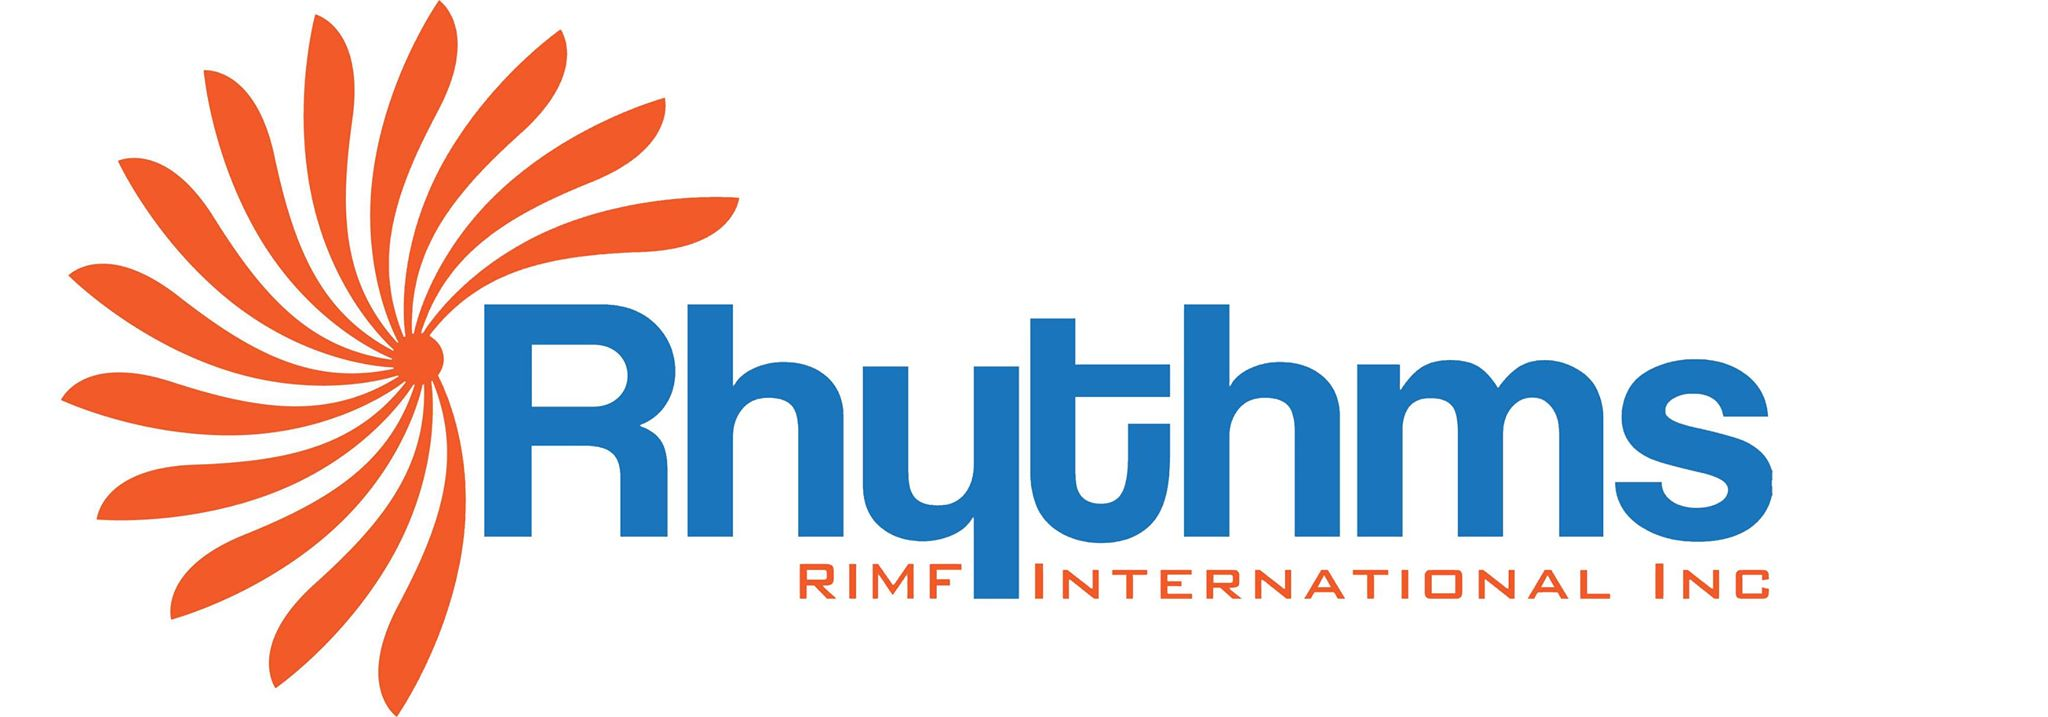 RIMF Rhythms International Inc.